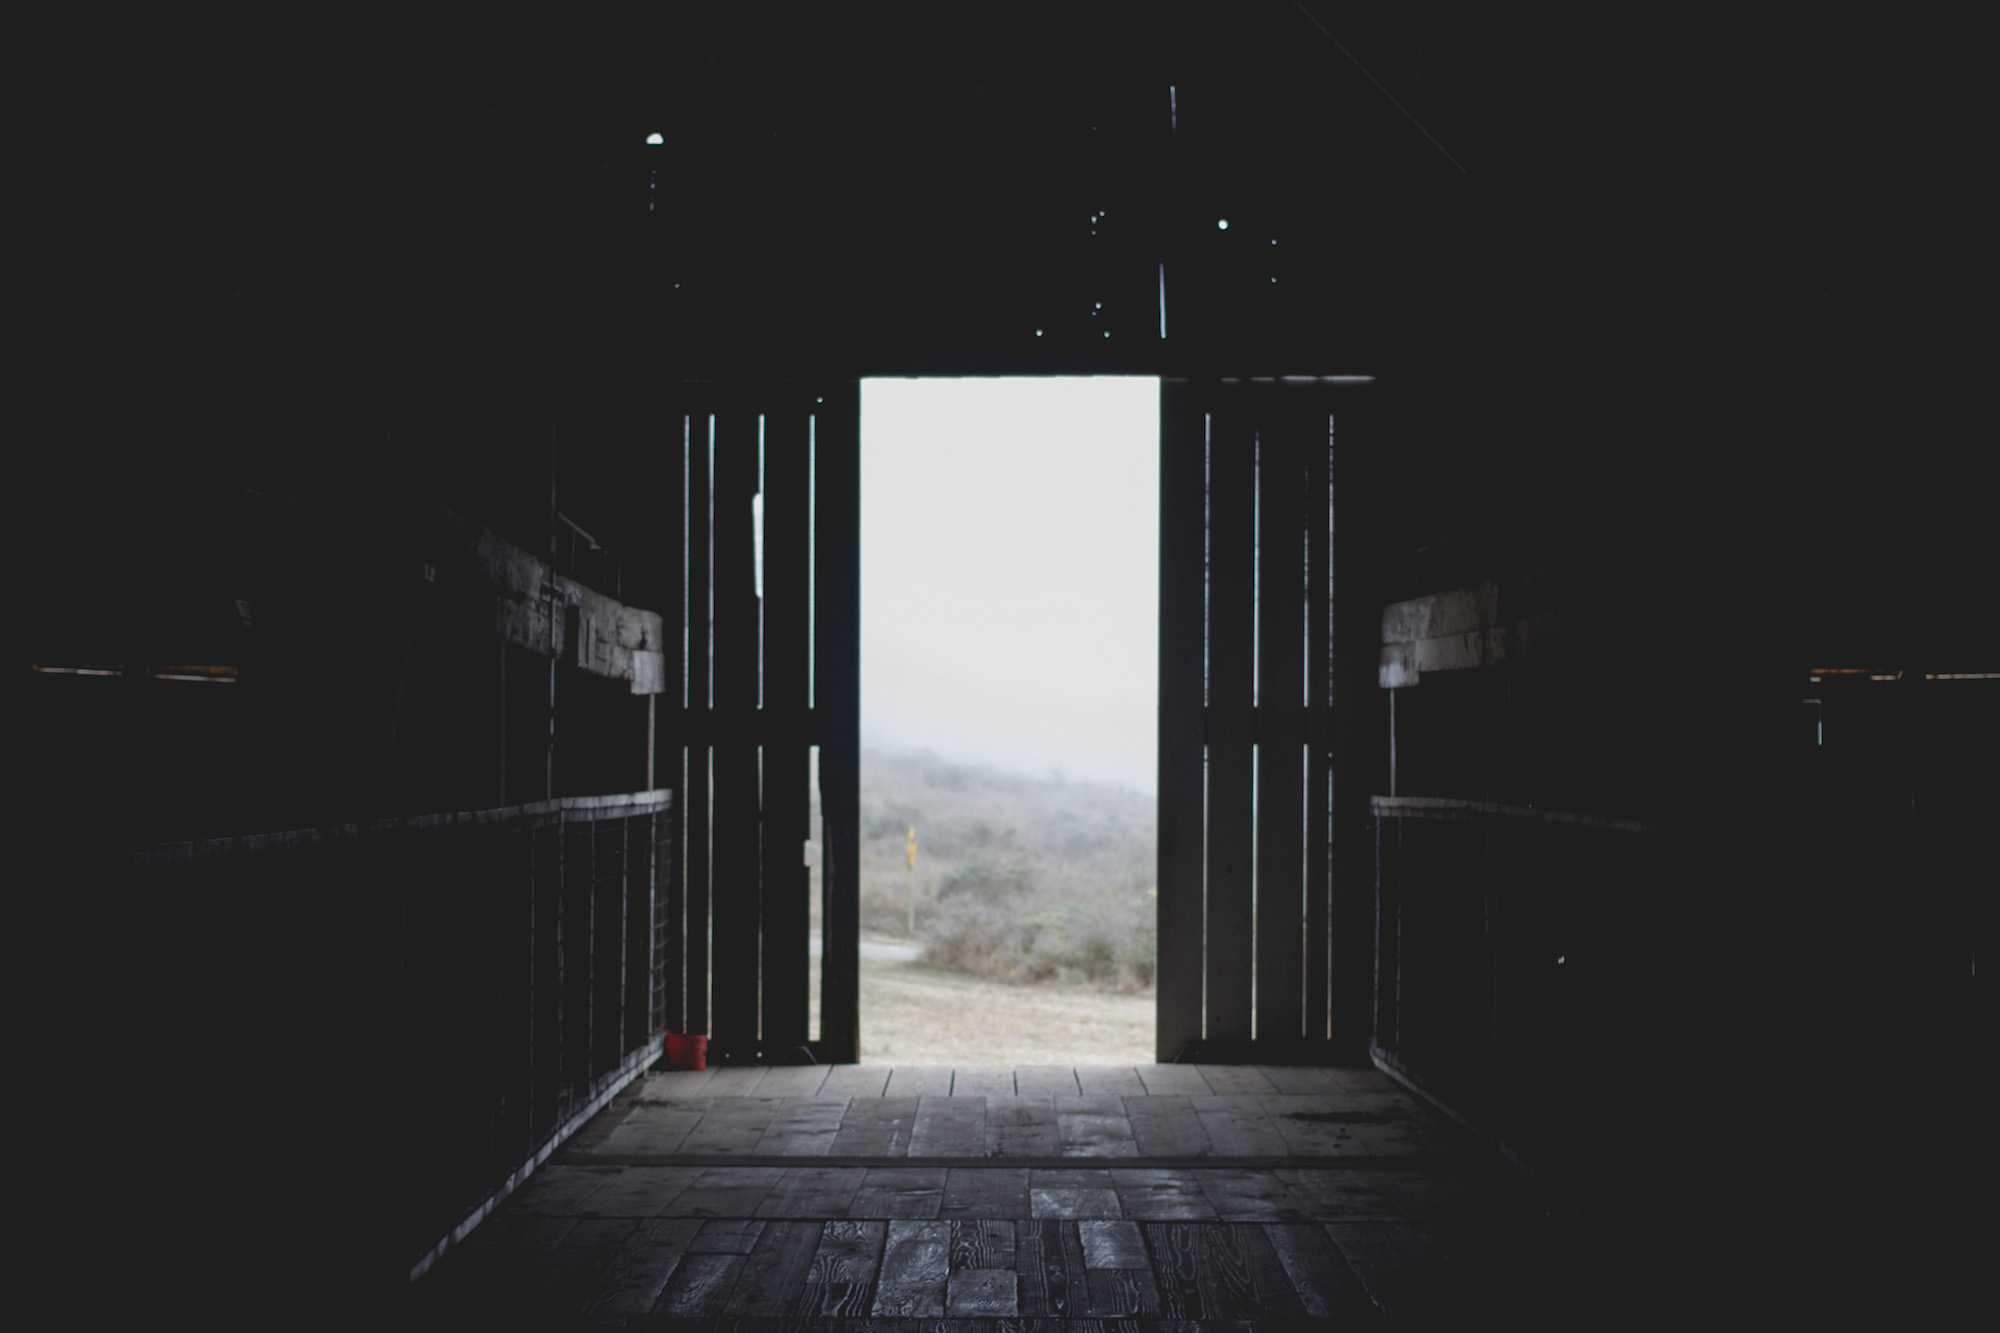 inside-barn-point-reyes.jpg